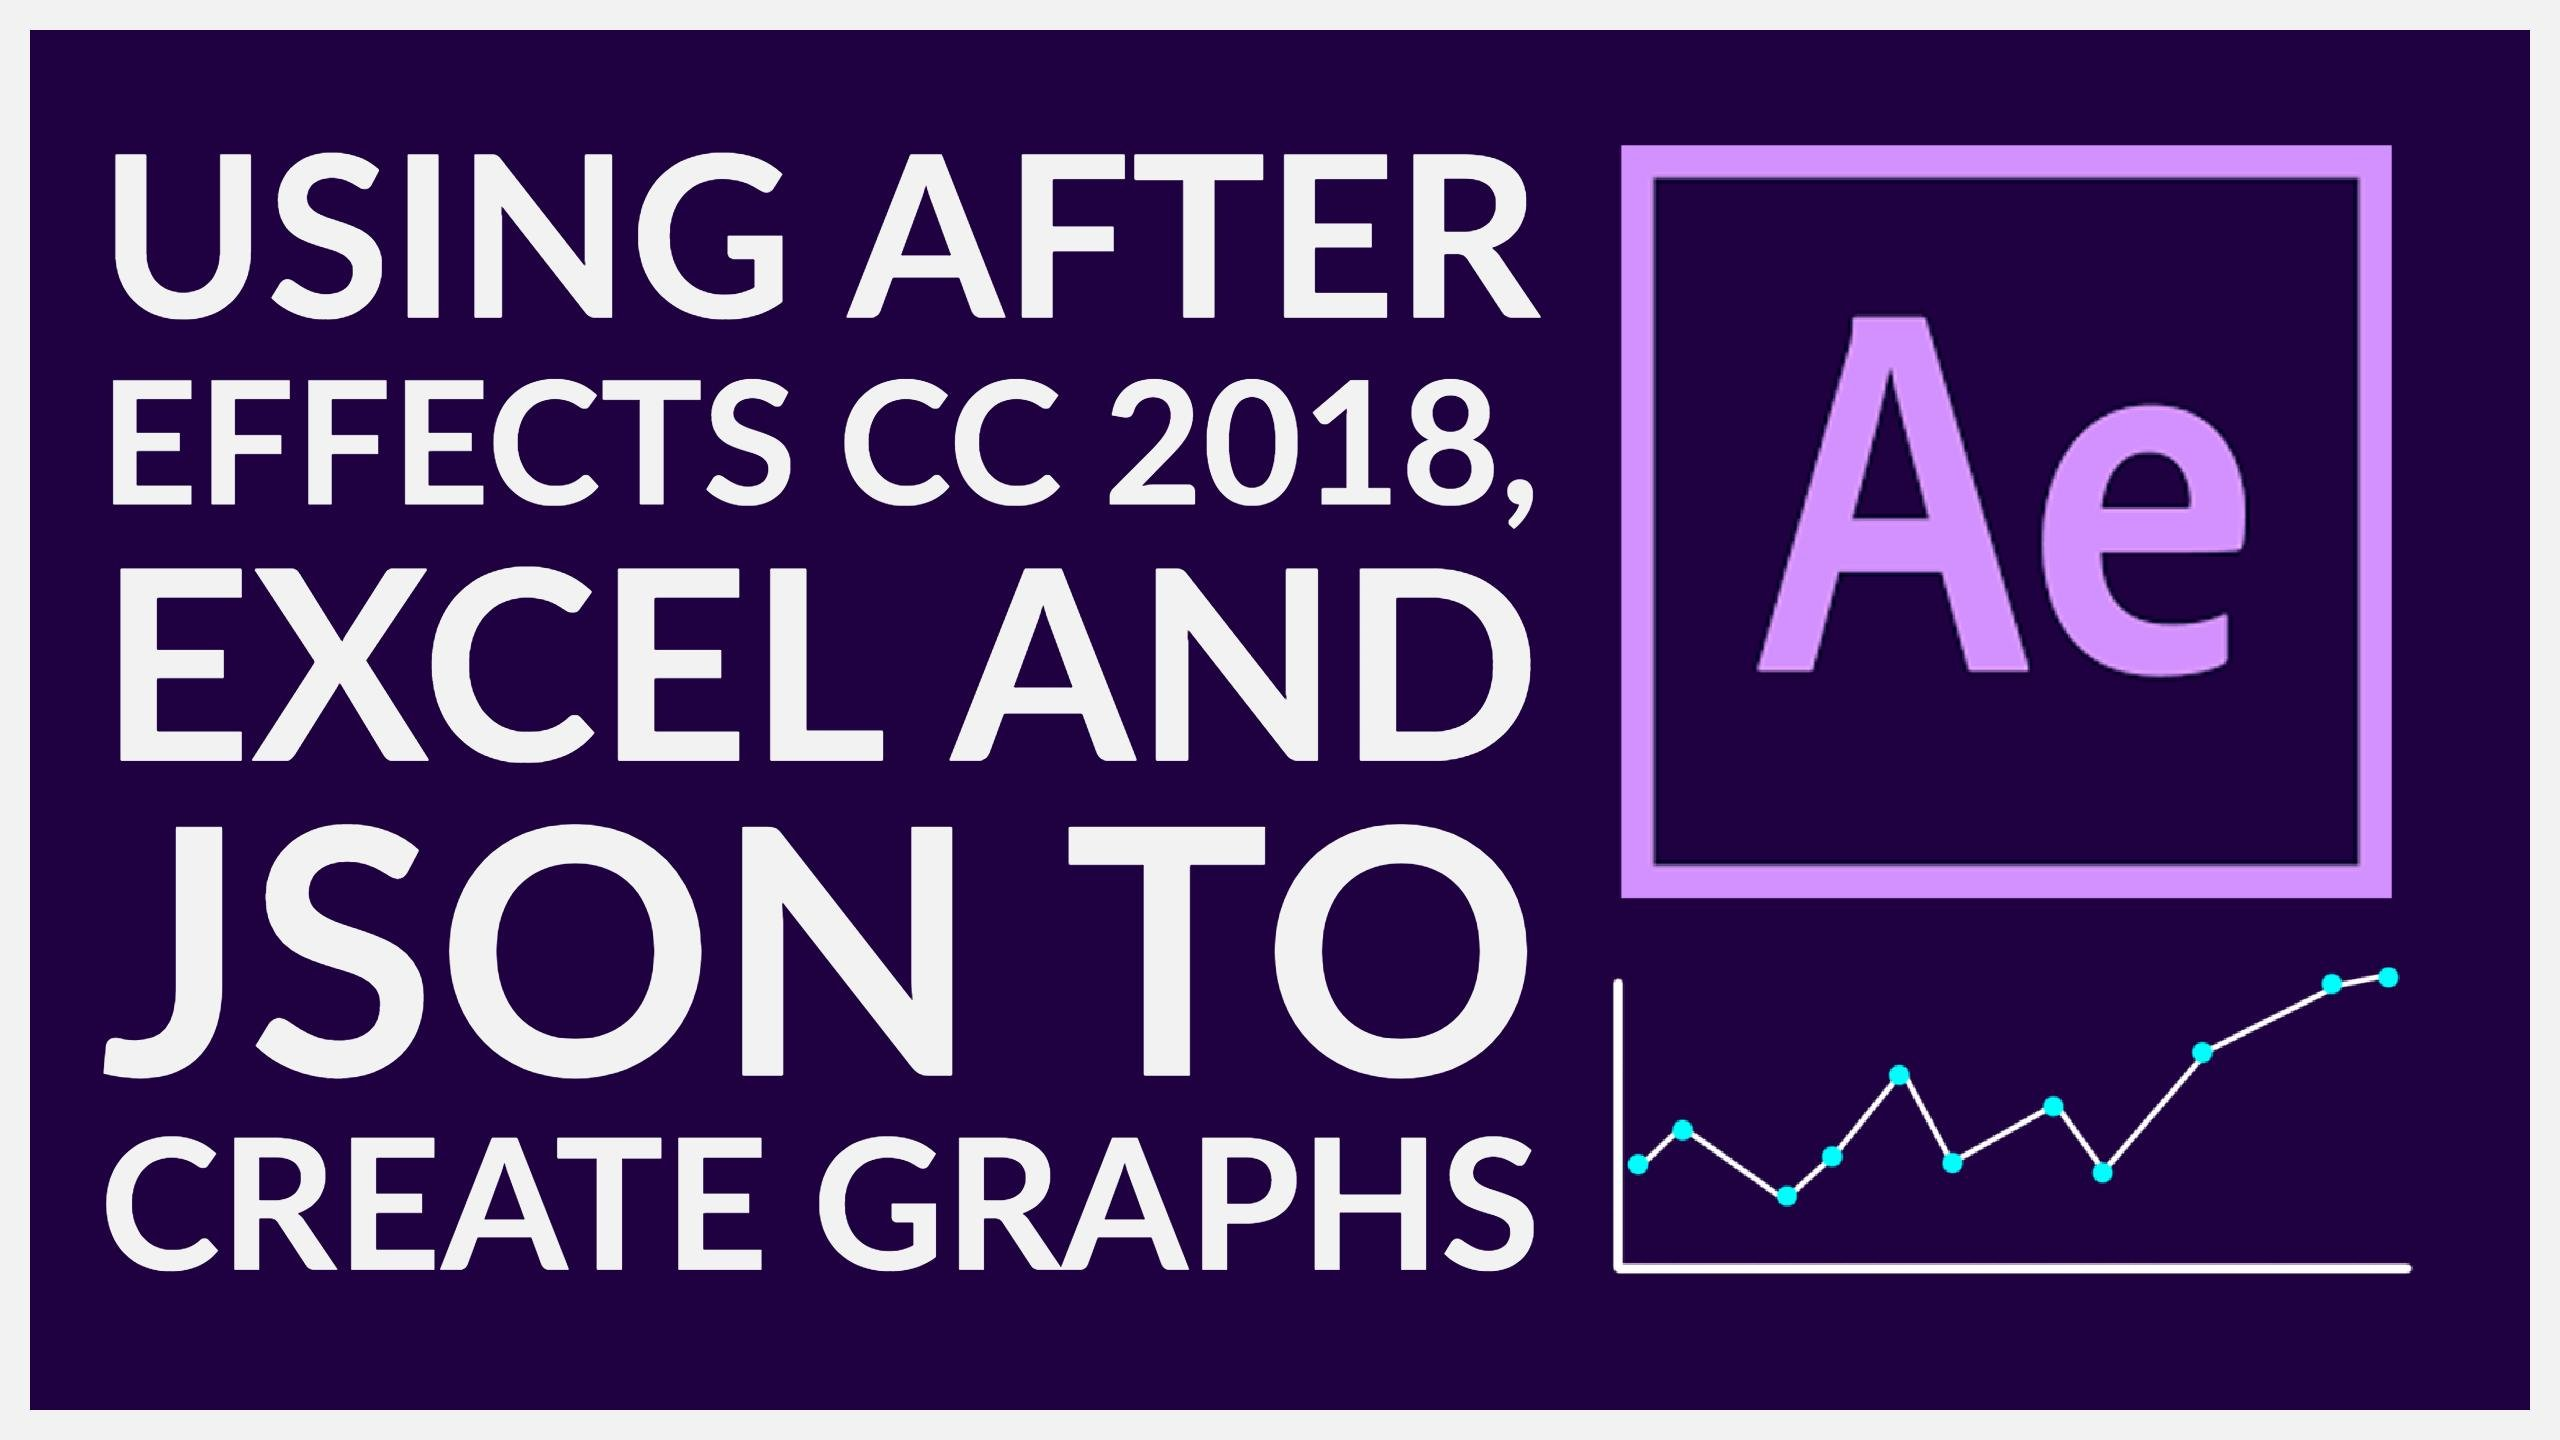 Connecting Excel to After Effects 2018 to make pretty Animated